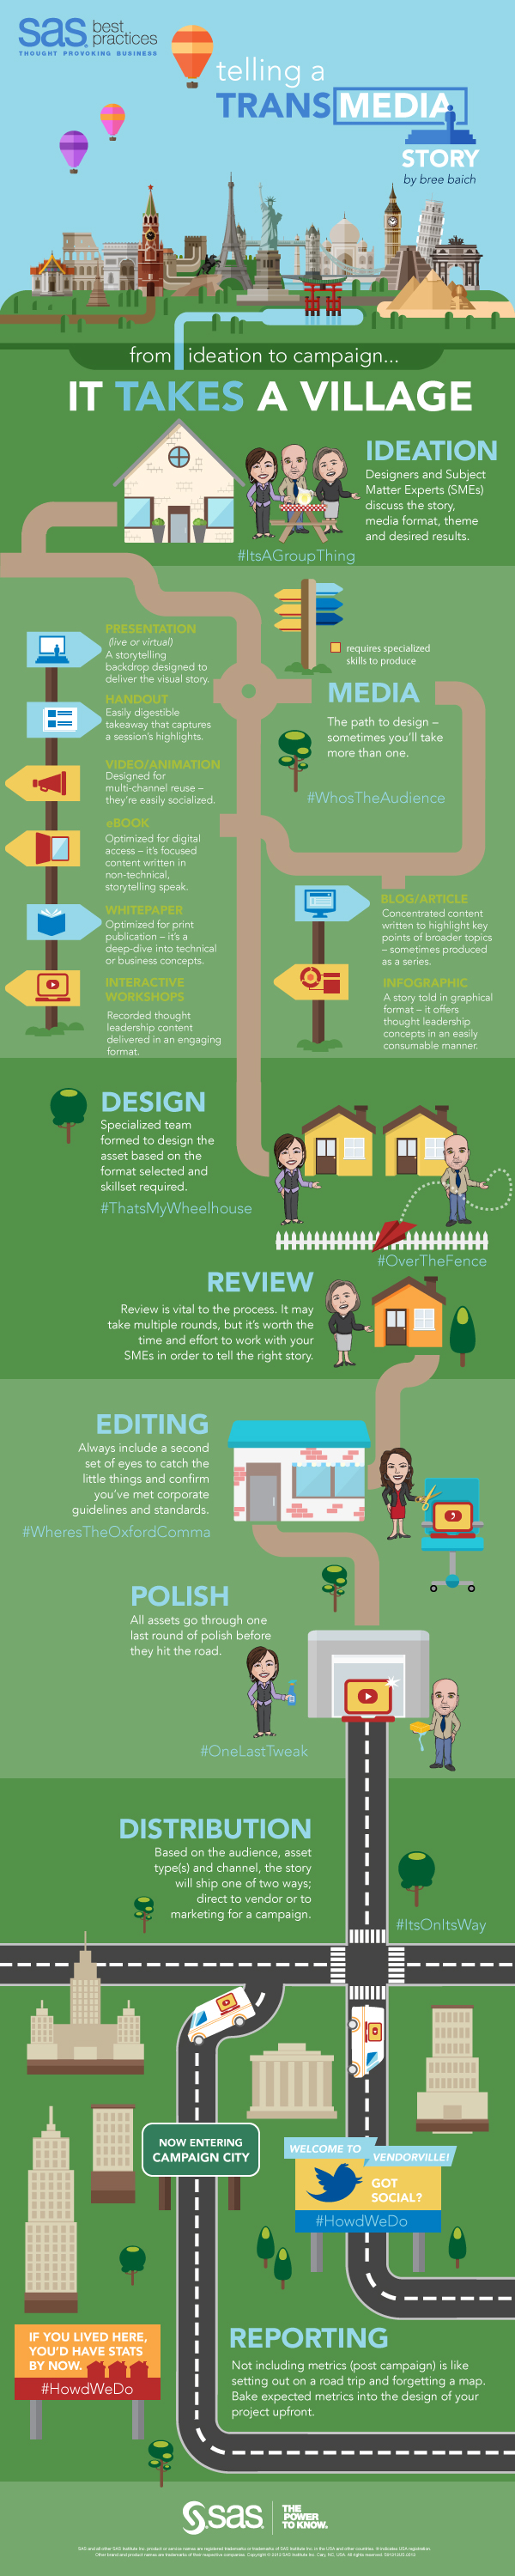 Transmedia Storytelling: From Ideation to Campaign, It Takes a Village [Infographic] | Social Media Today